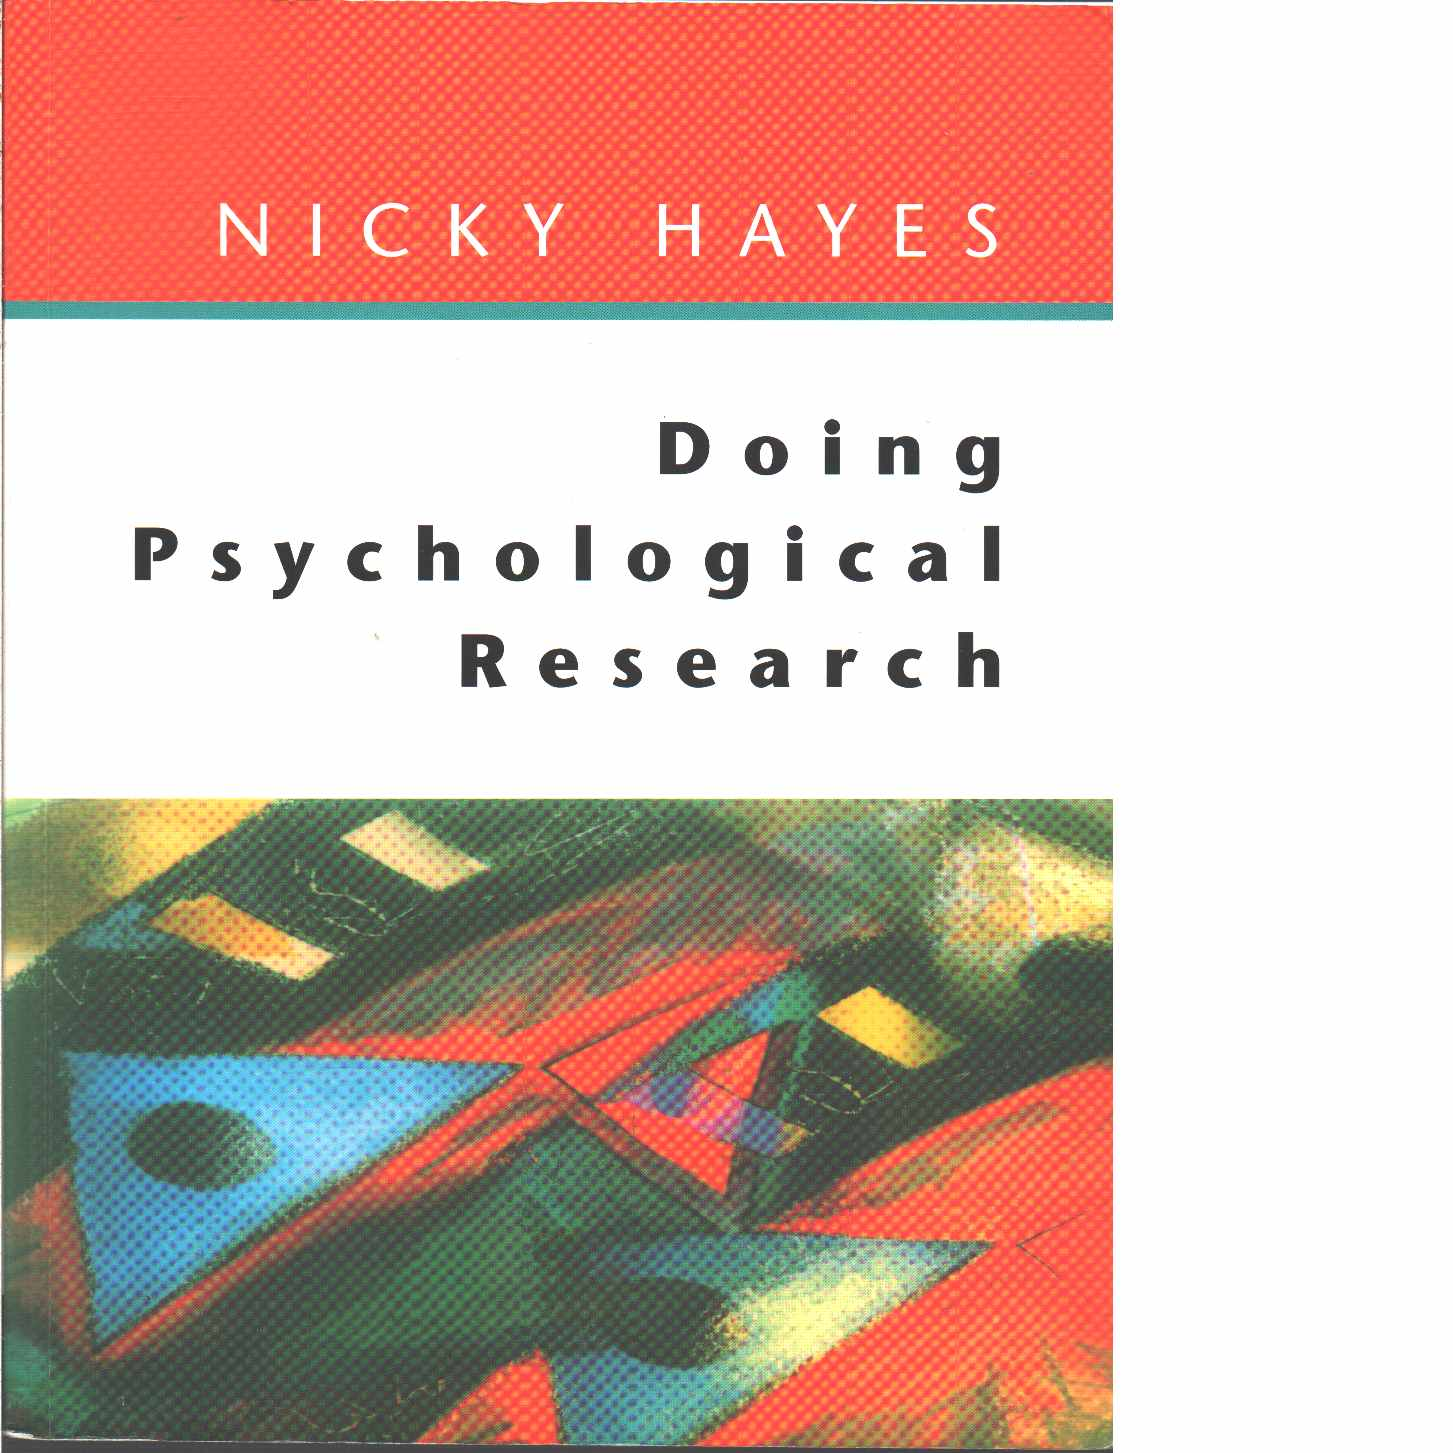 Doing psychological research : gathering and analysing data  - Hayes, Nicky